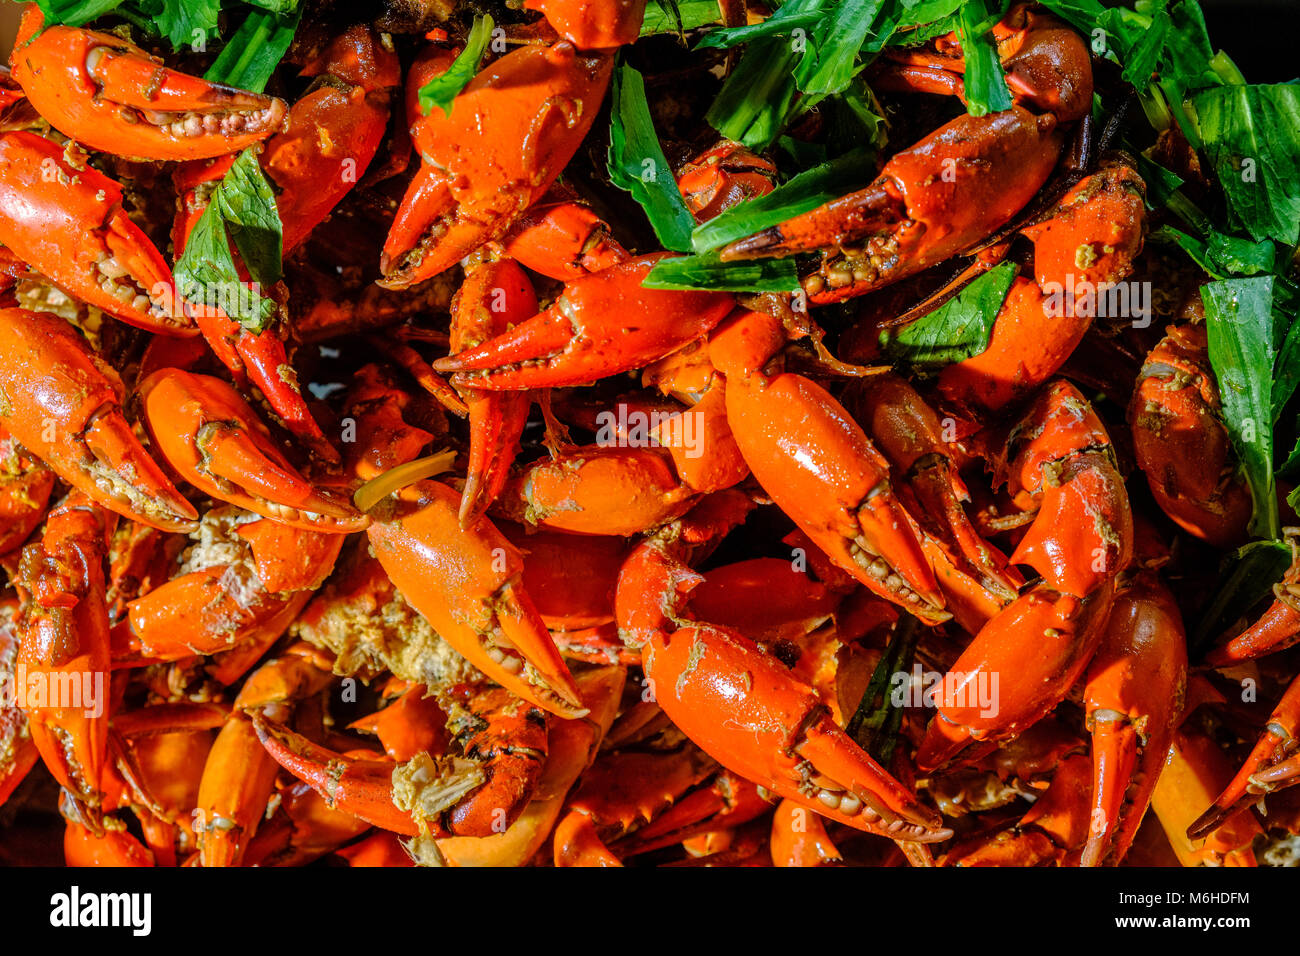 Boiled lobsters are offered to eat in illuminated street restaurants at night in the centre of town - Stock Image